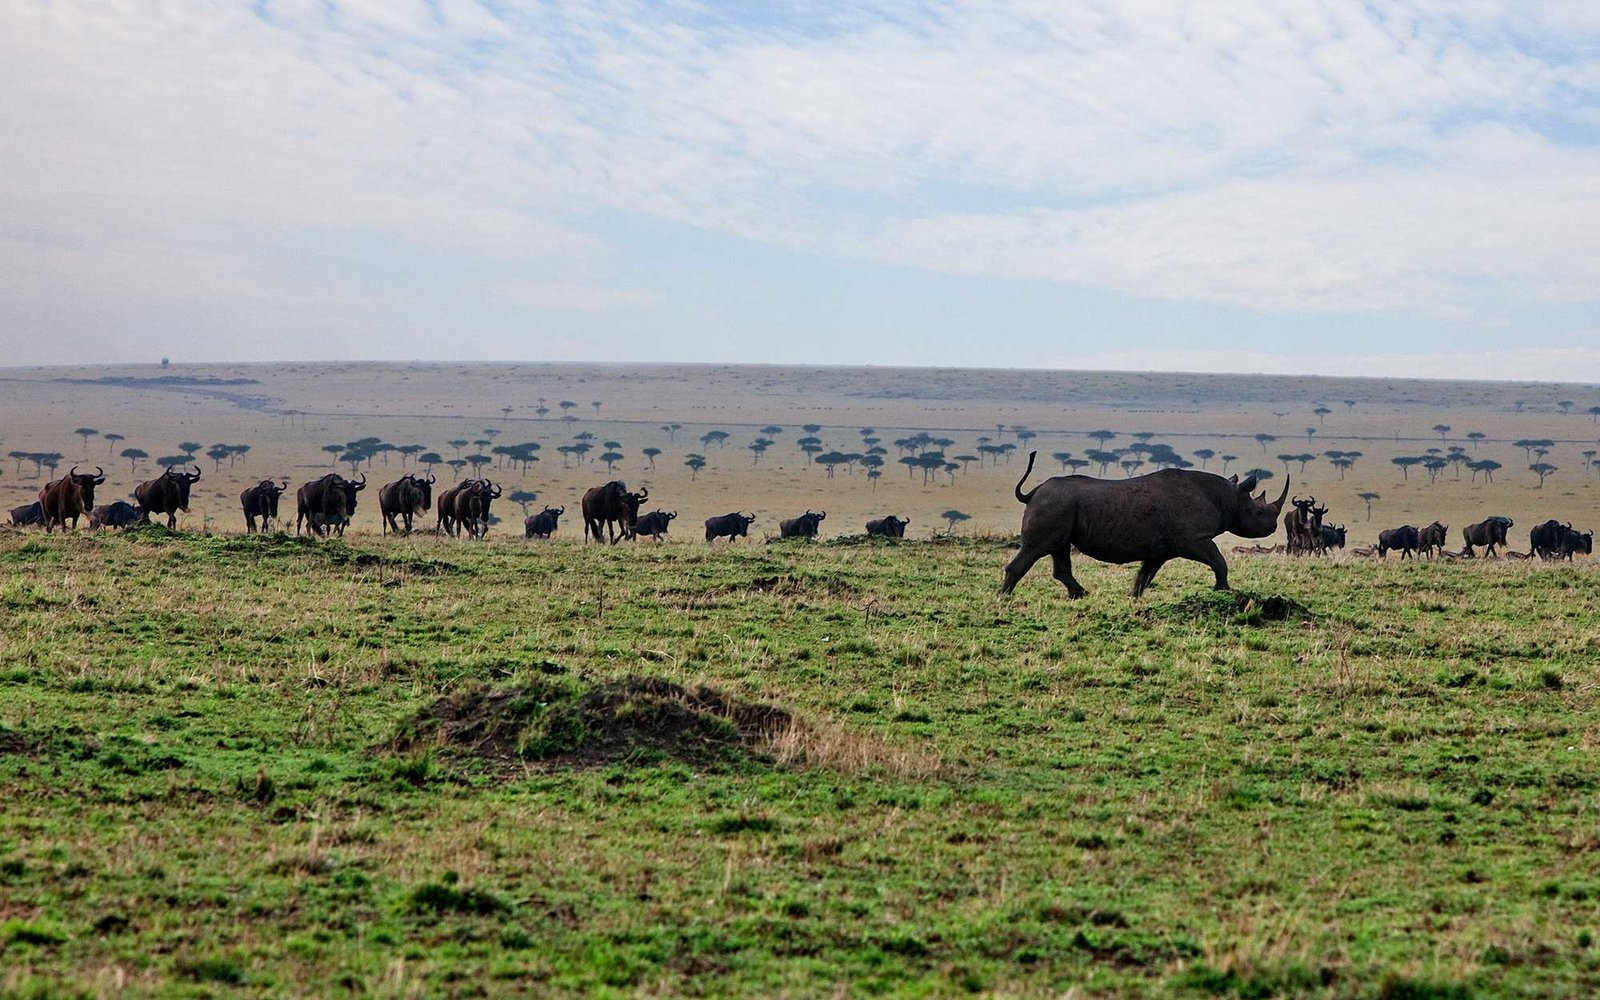 Kenya. A black rhino passes curious wildebeest on the plains in Masai Mara National Reserve.